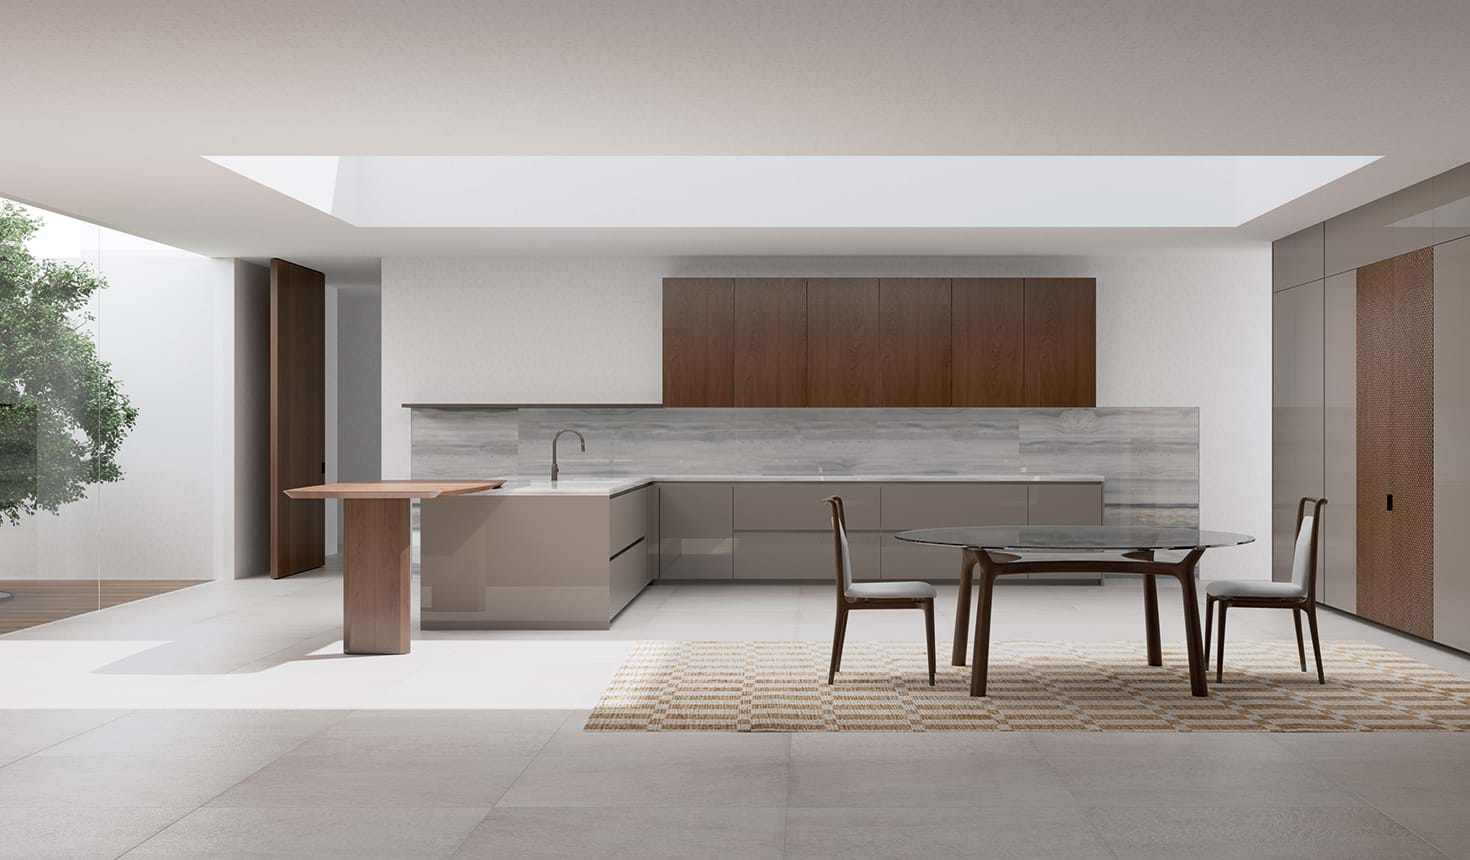 GK.01 is the first Giorgetti kitchen 6